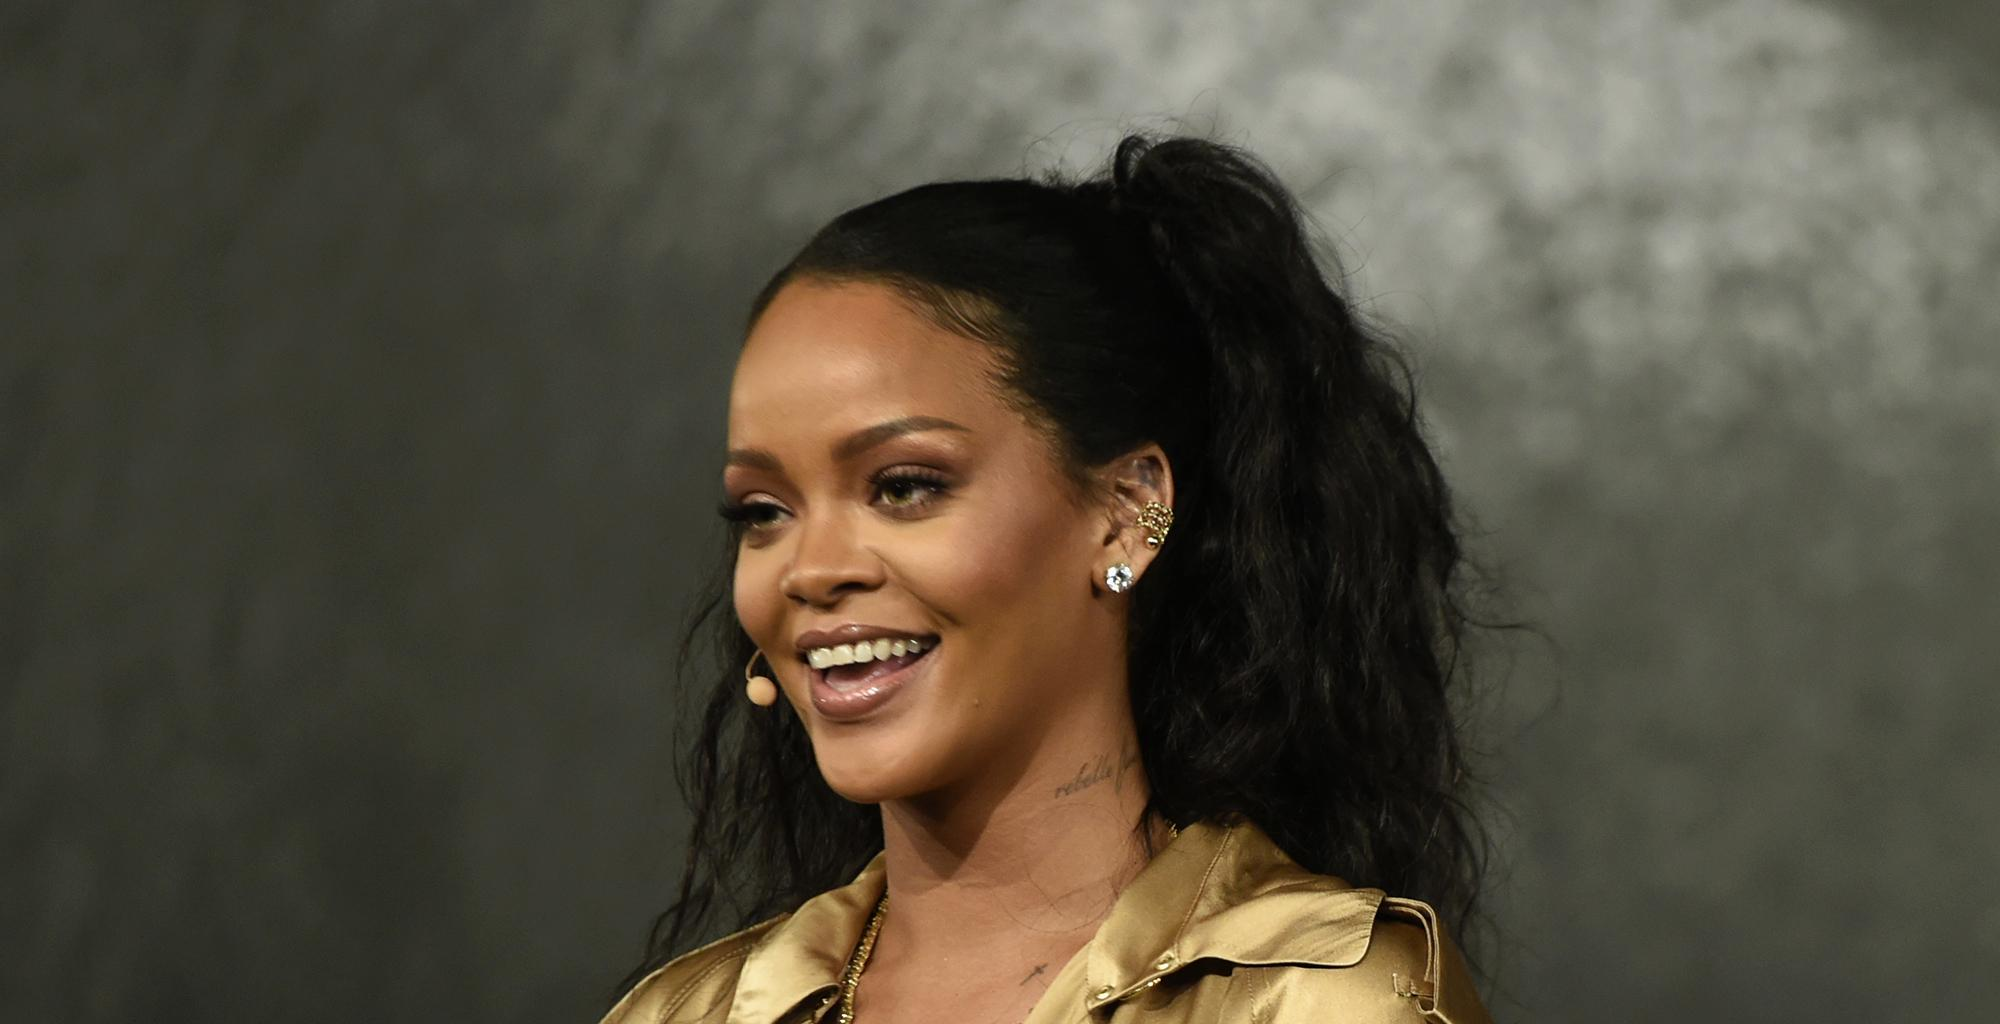 Rihanna Confesses She's Been Struggling With 'Balance' In Her Career - Says She's Overwhelmed And Taking A Break